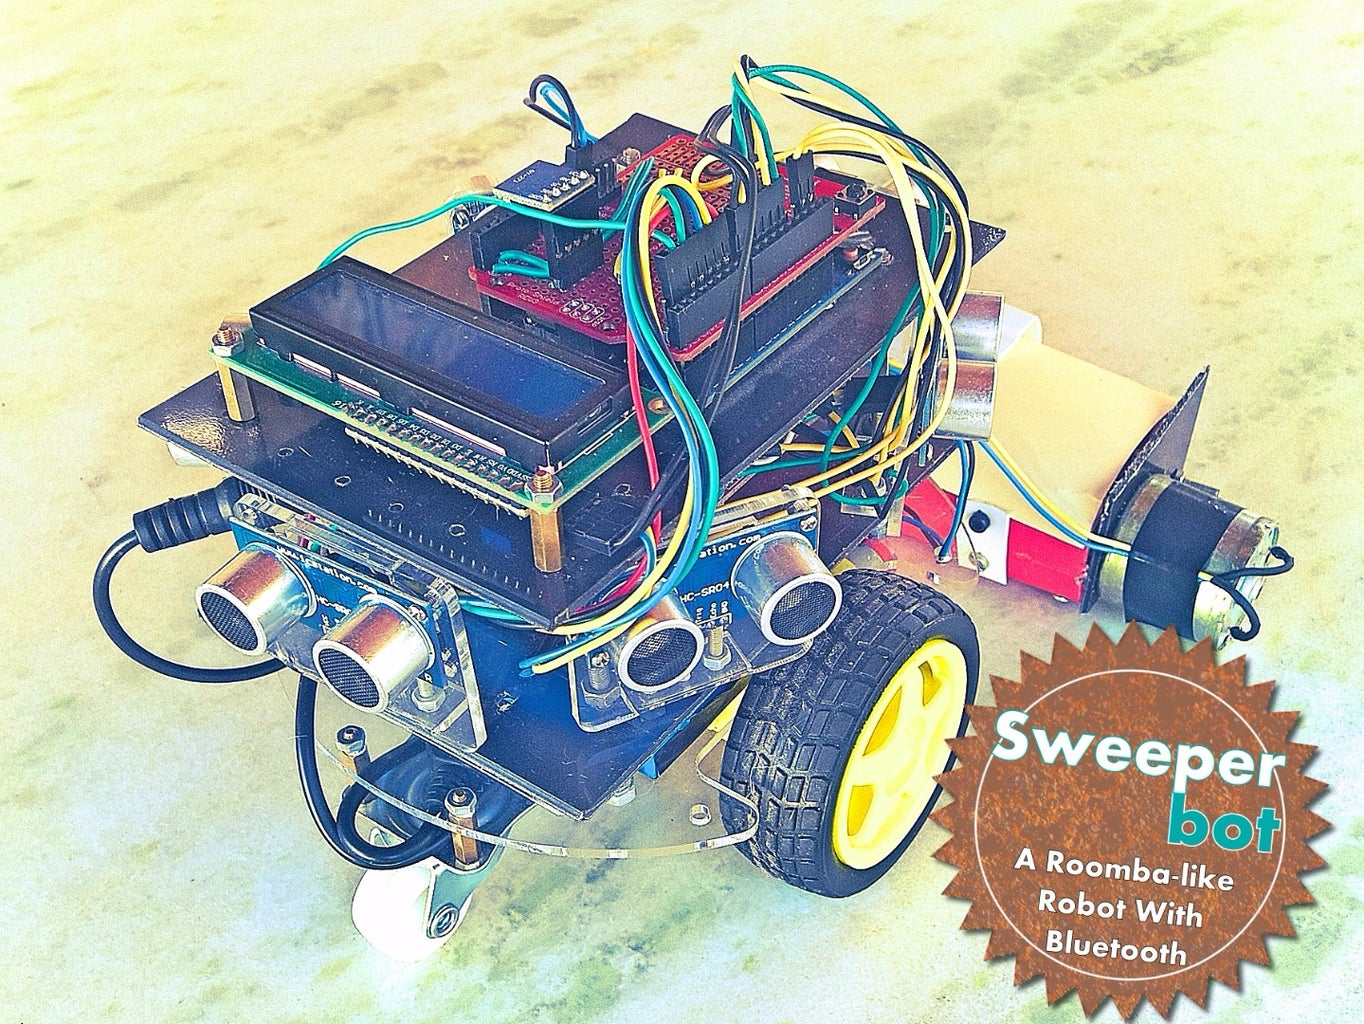 Homemade Cleanning Robot With Bluetooth